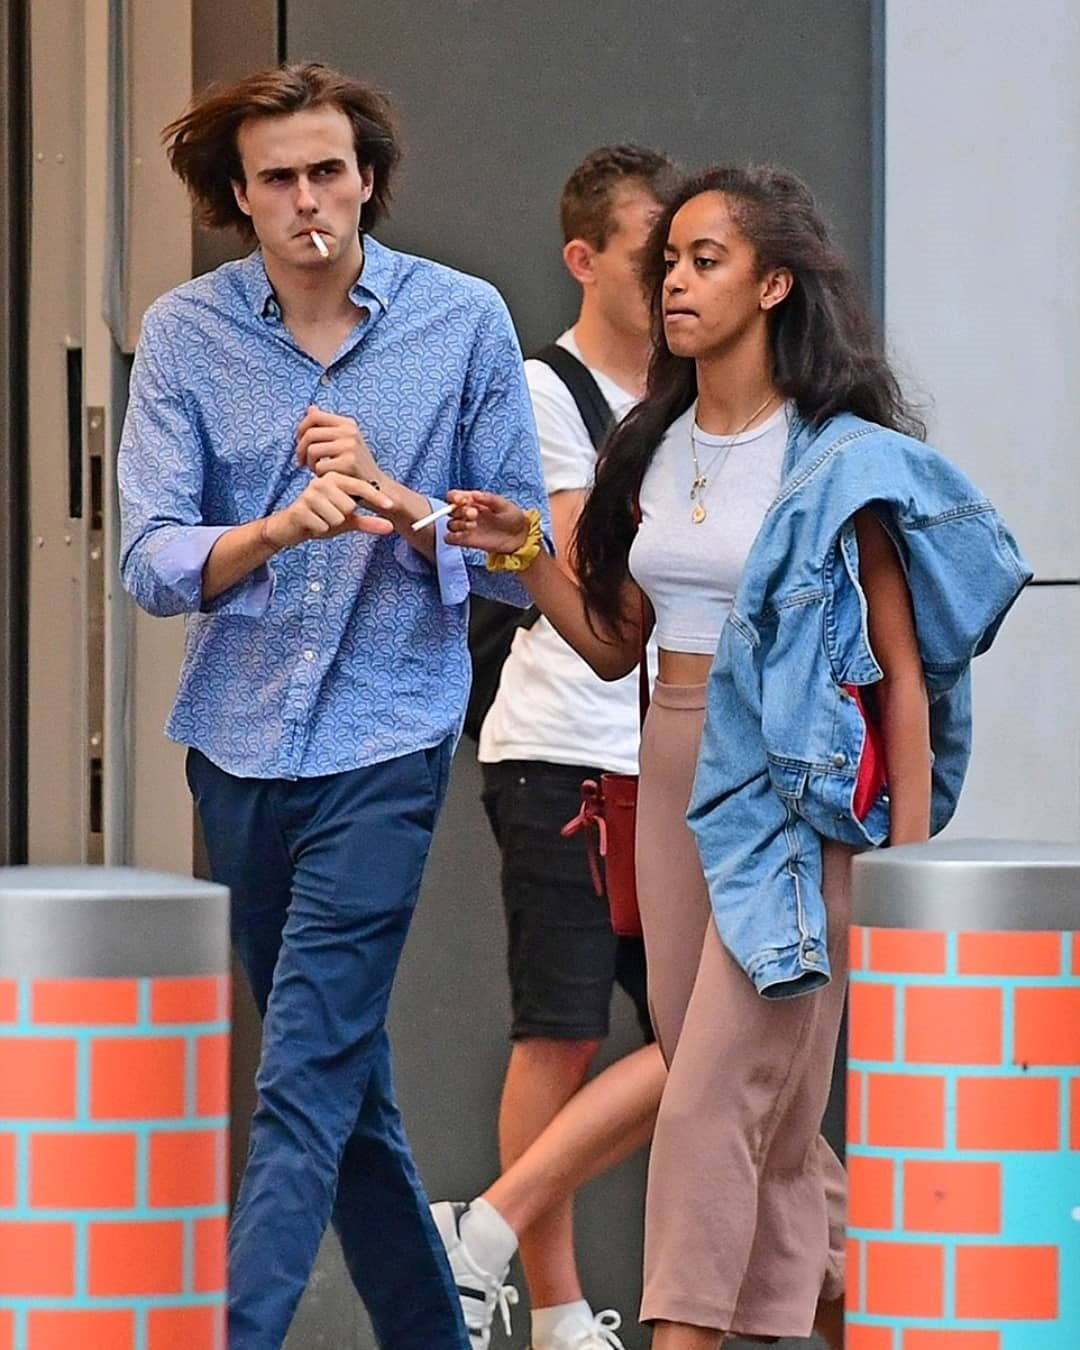 Malia Obama Caught Kissing And Smoking Cigarette On A Date